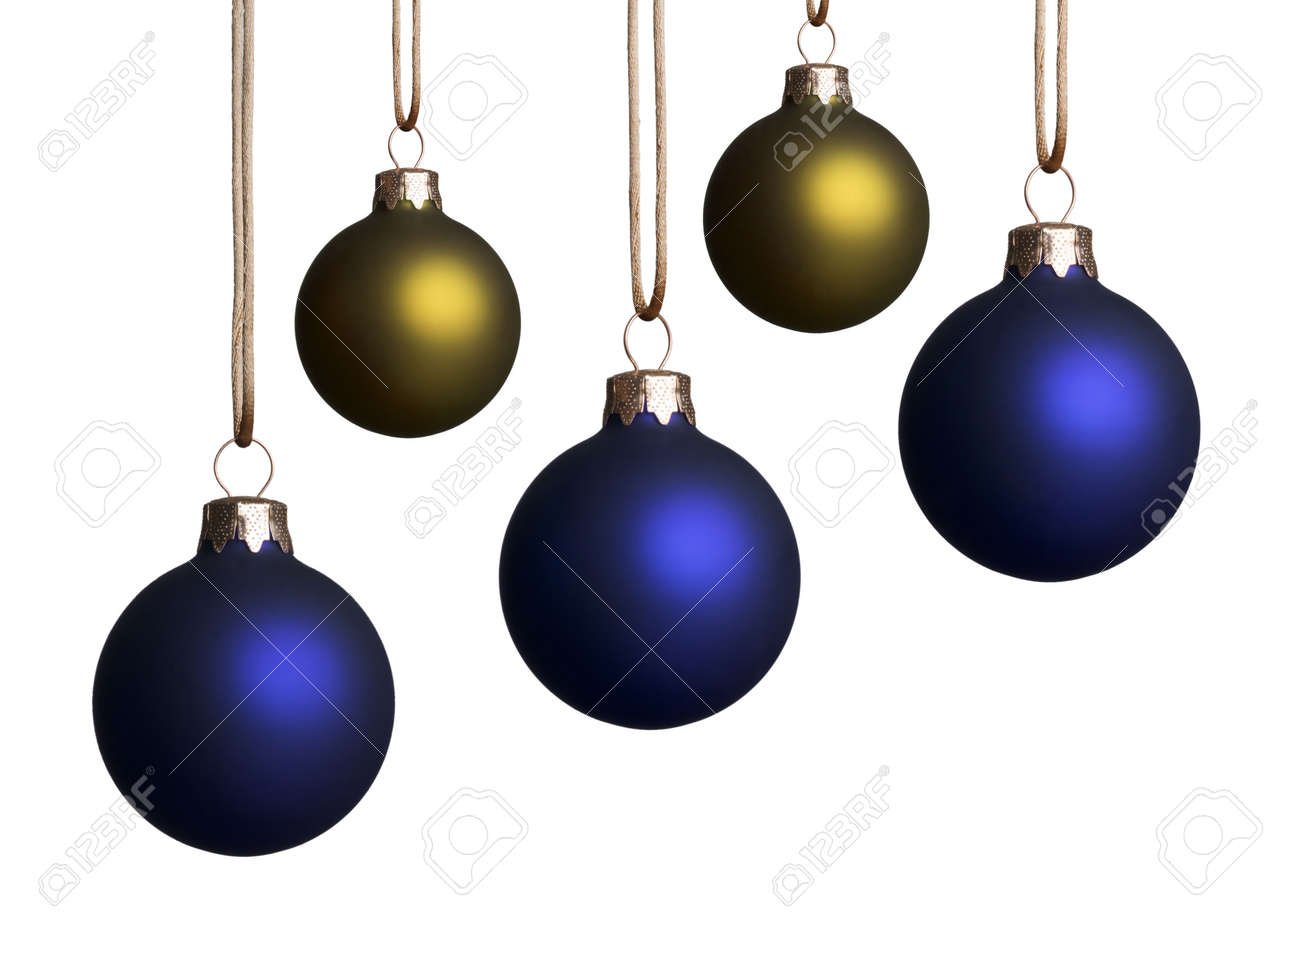 Blue and gold christmas tree decorations - Five Blue And Gold Christmas Ornaments Hanging Isolated On A White Background Stock Photo